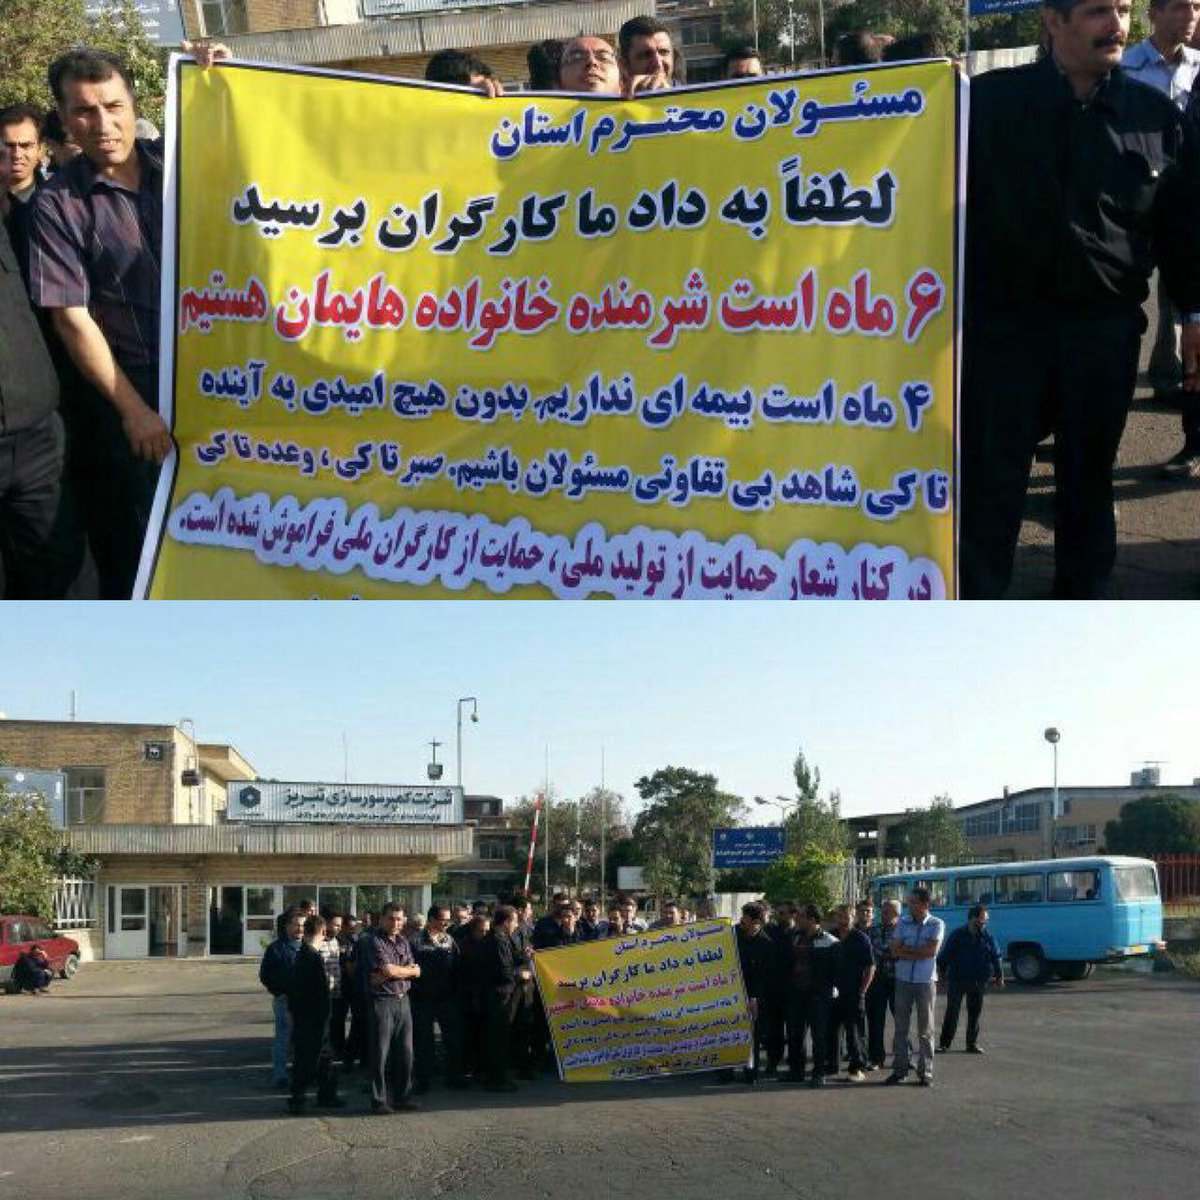 Aug 15 - Tabriz, NW #Iran Employees of a compressor manufacturing company are on strike, protesting delays in their due paychecks and pensions. They haven&#39;t been paid in six months nor received insurance pensions for the past four months. #IranProtests<br>http://pic.twitter.com/FmrFbmRMJY